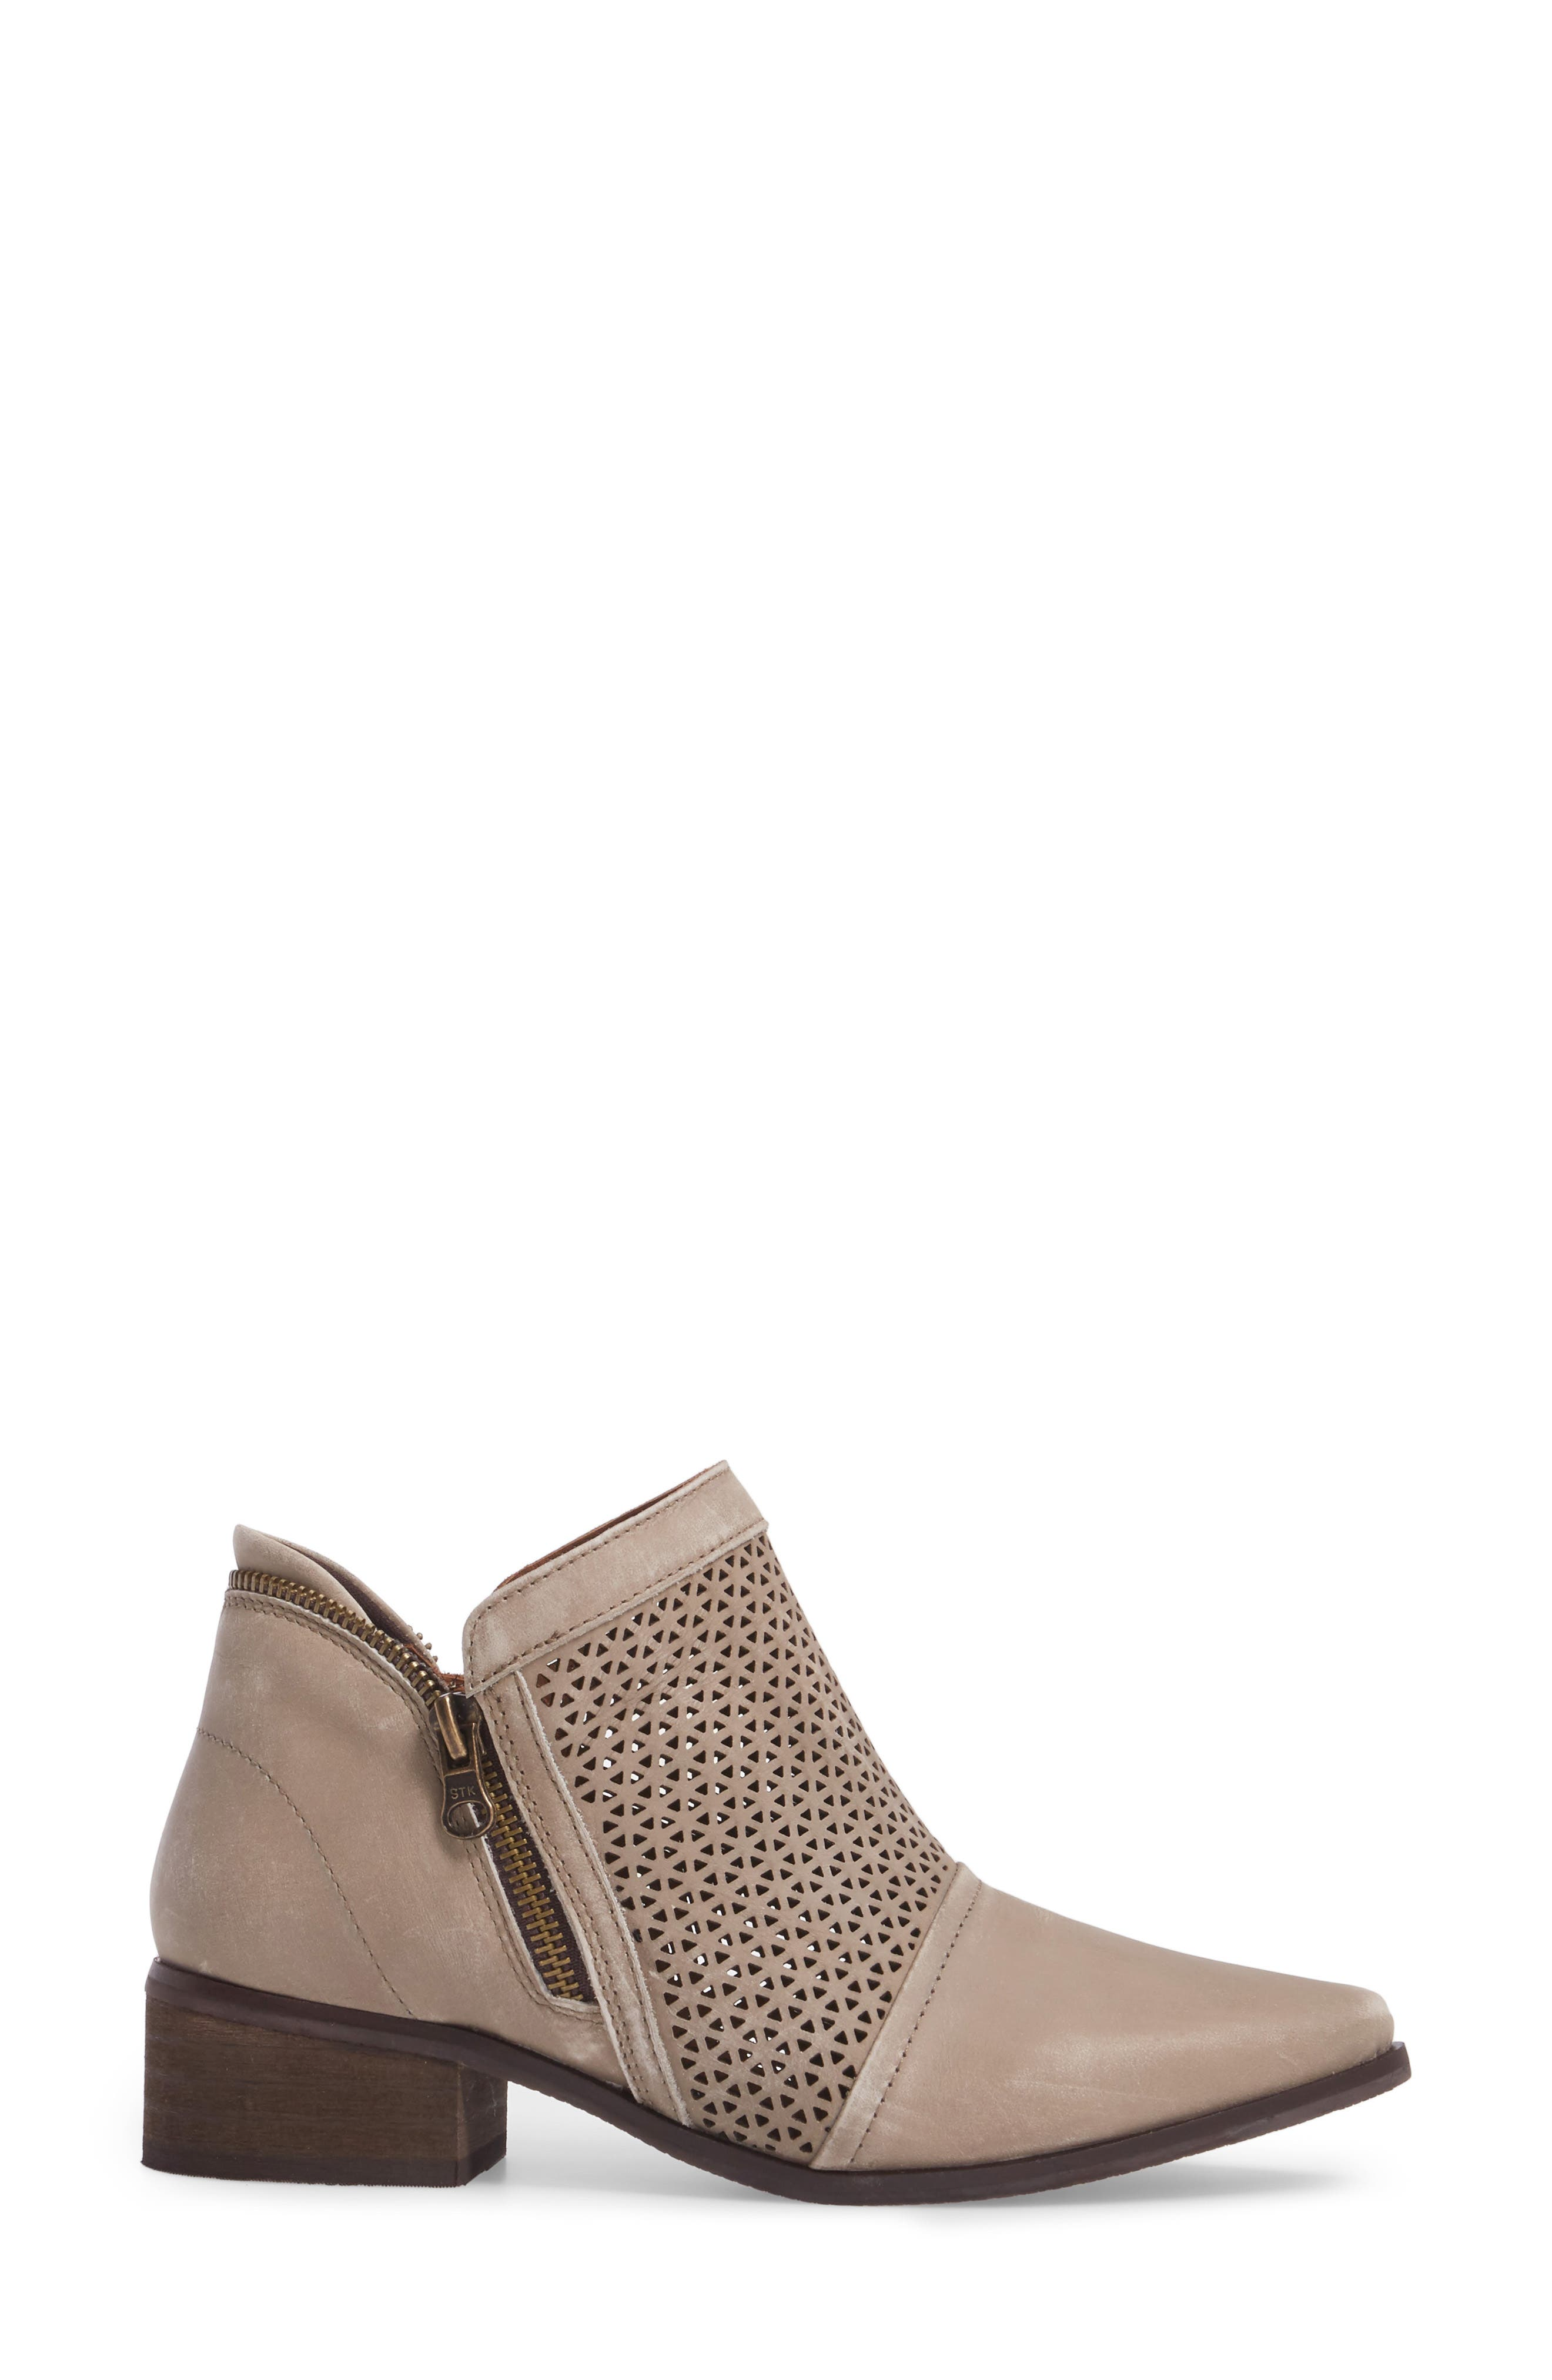 Zayna Bootie,                             Alternate thumbnail 3, color,                             Taupe Suede